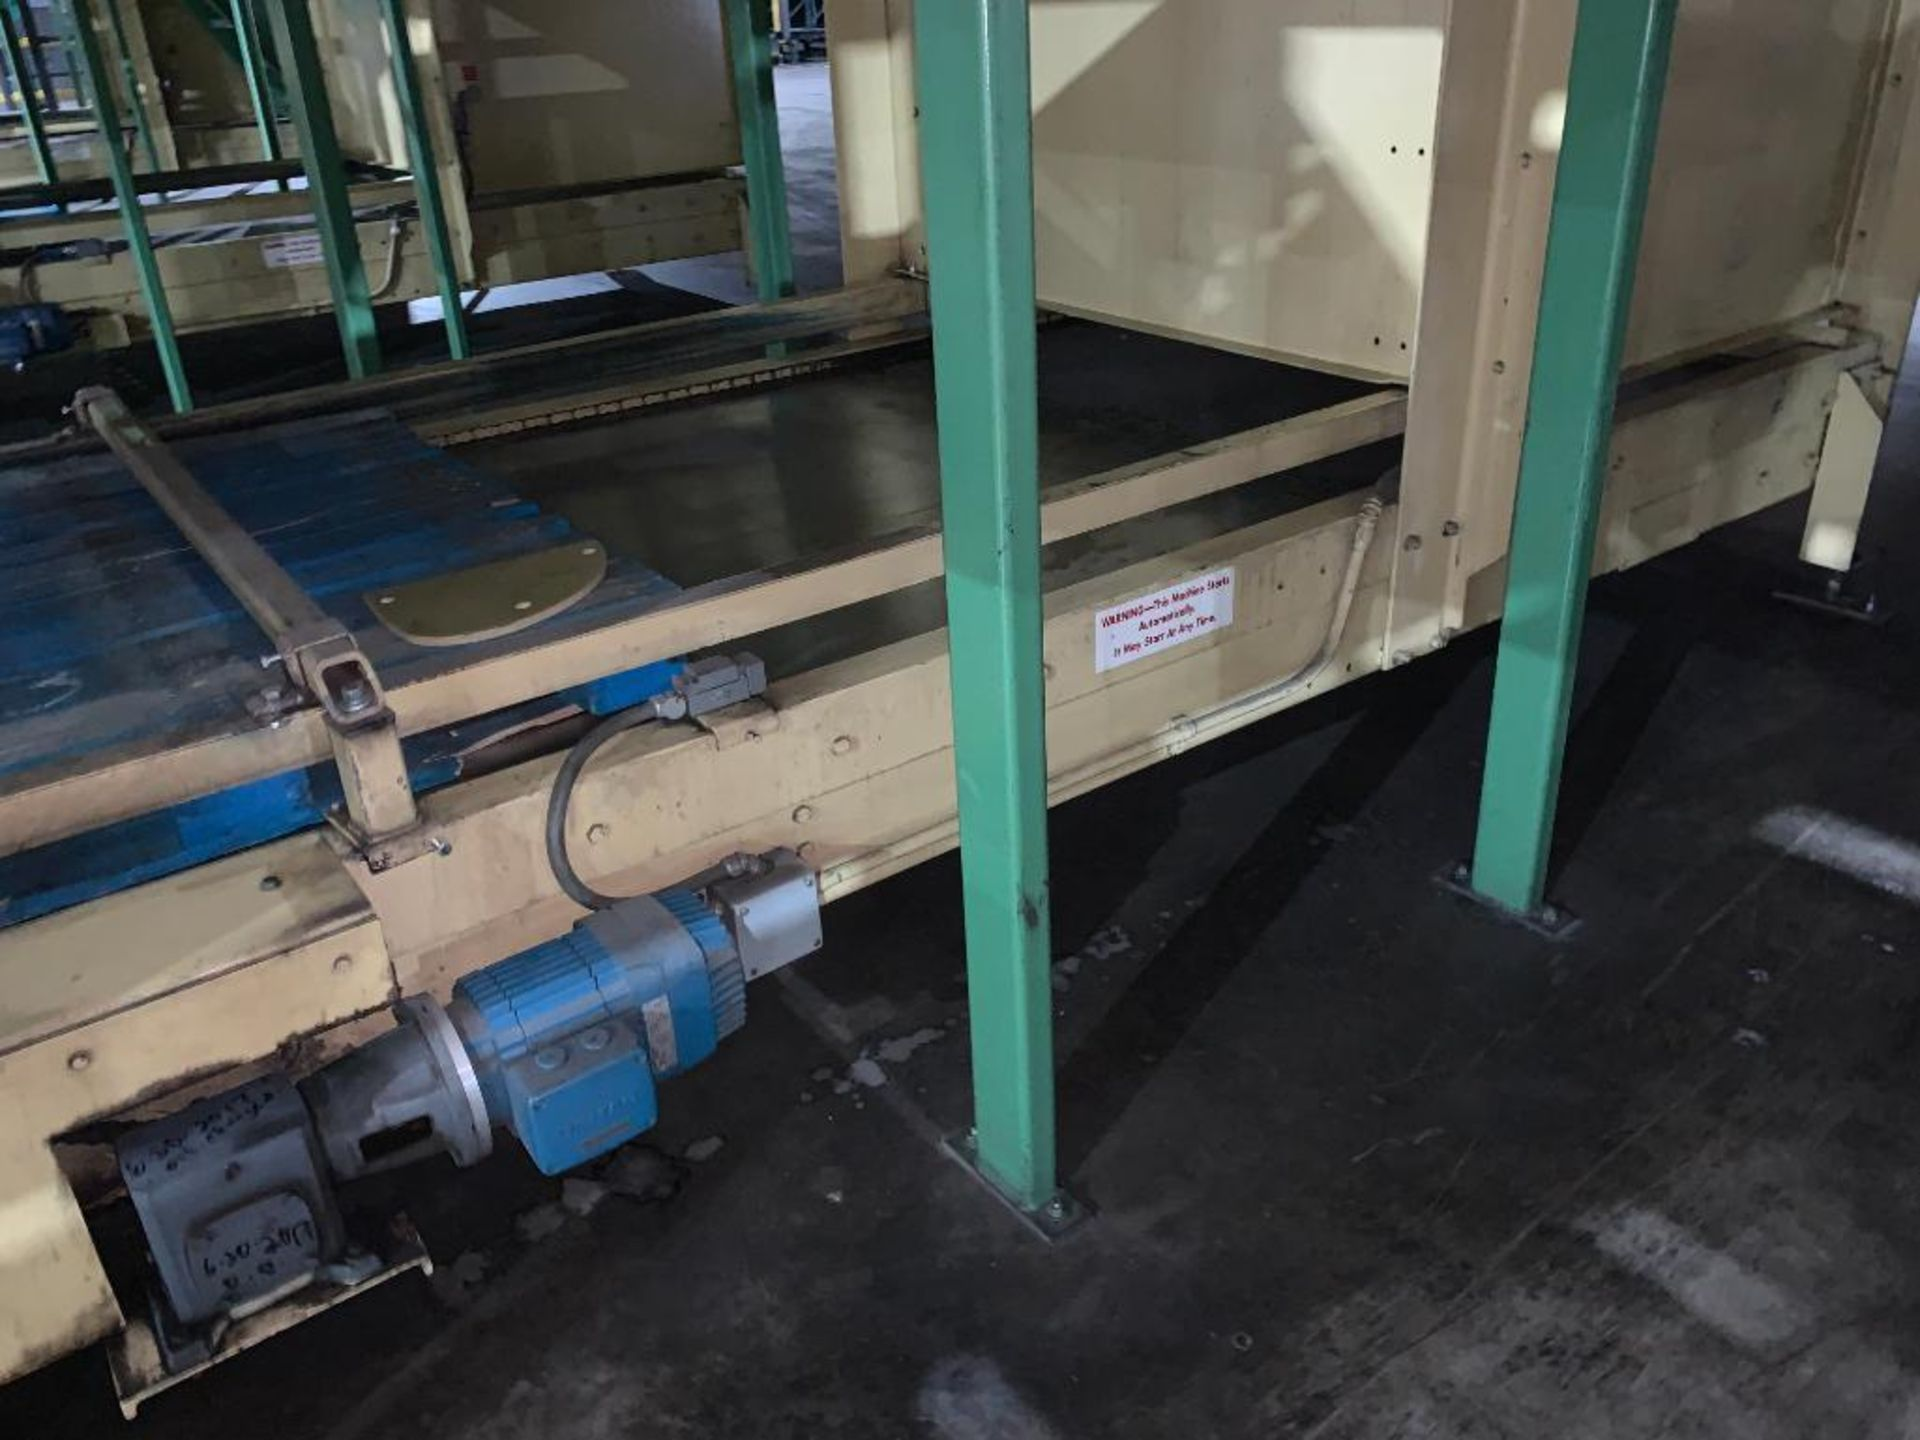 1992 Currie top to bottom palletizer, machine number LSP-5-1175 - Image 21 of 54